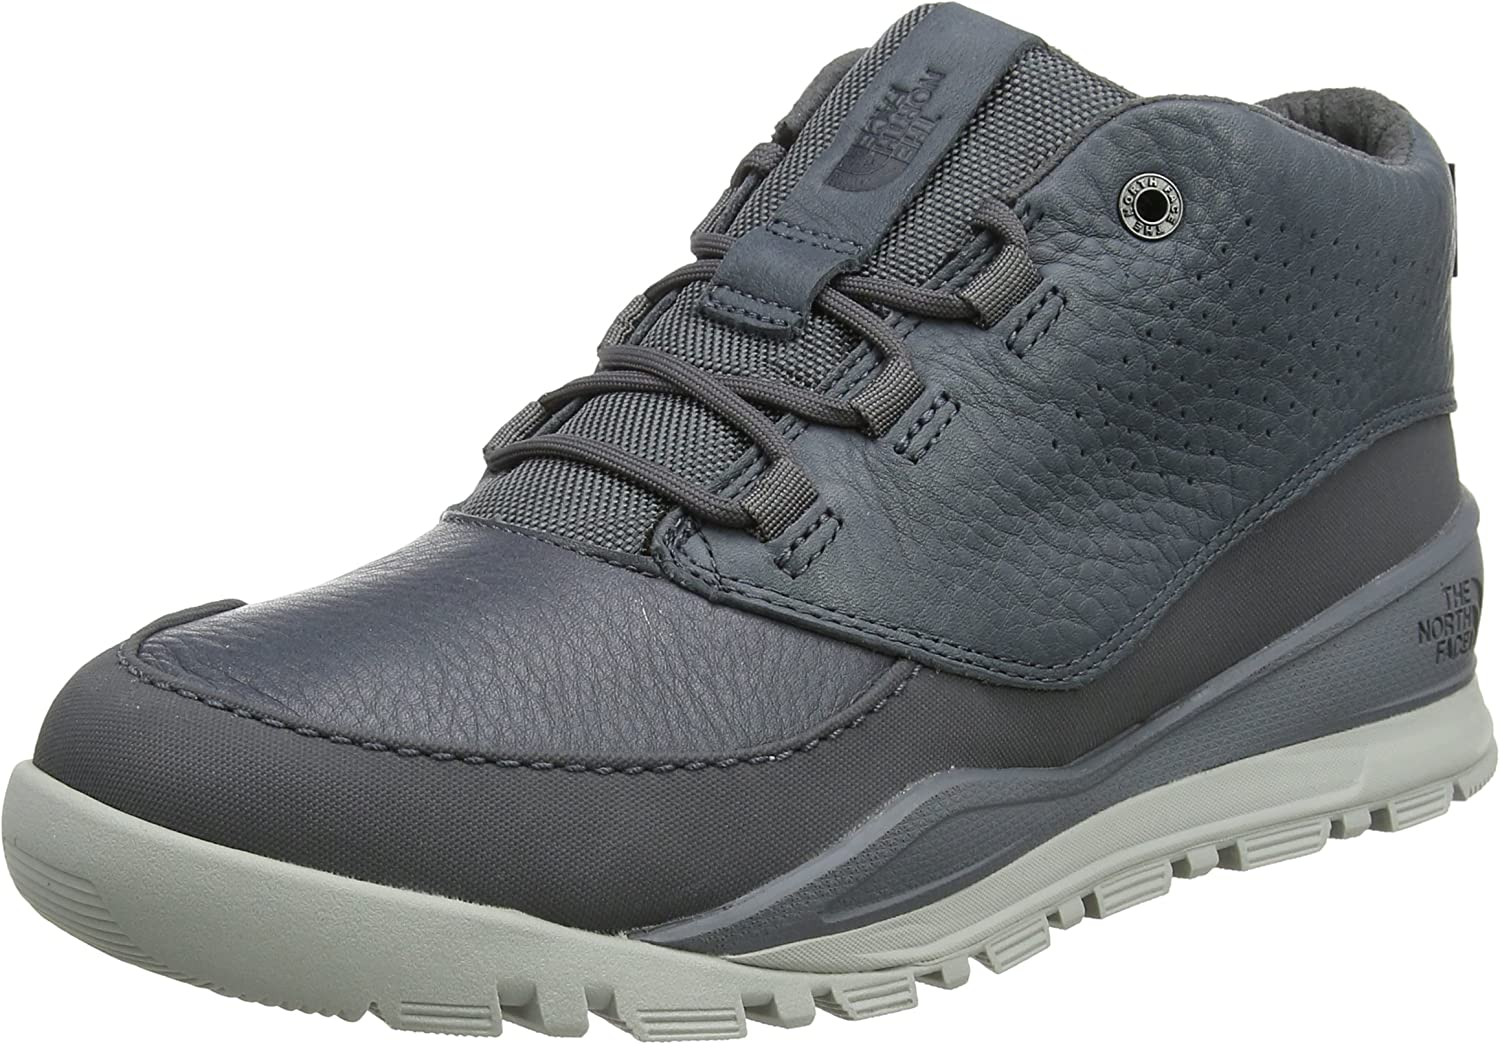 TALLA 44 EU. The North Face M Edgewood Chukka, Botas Hombre